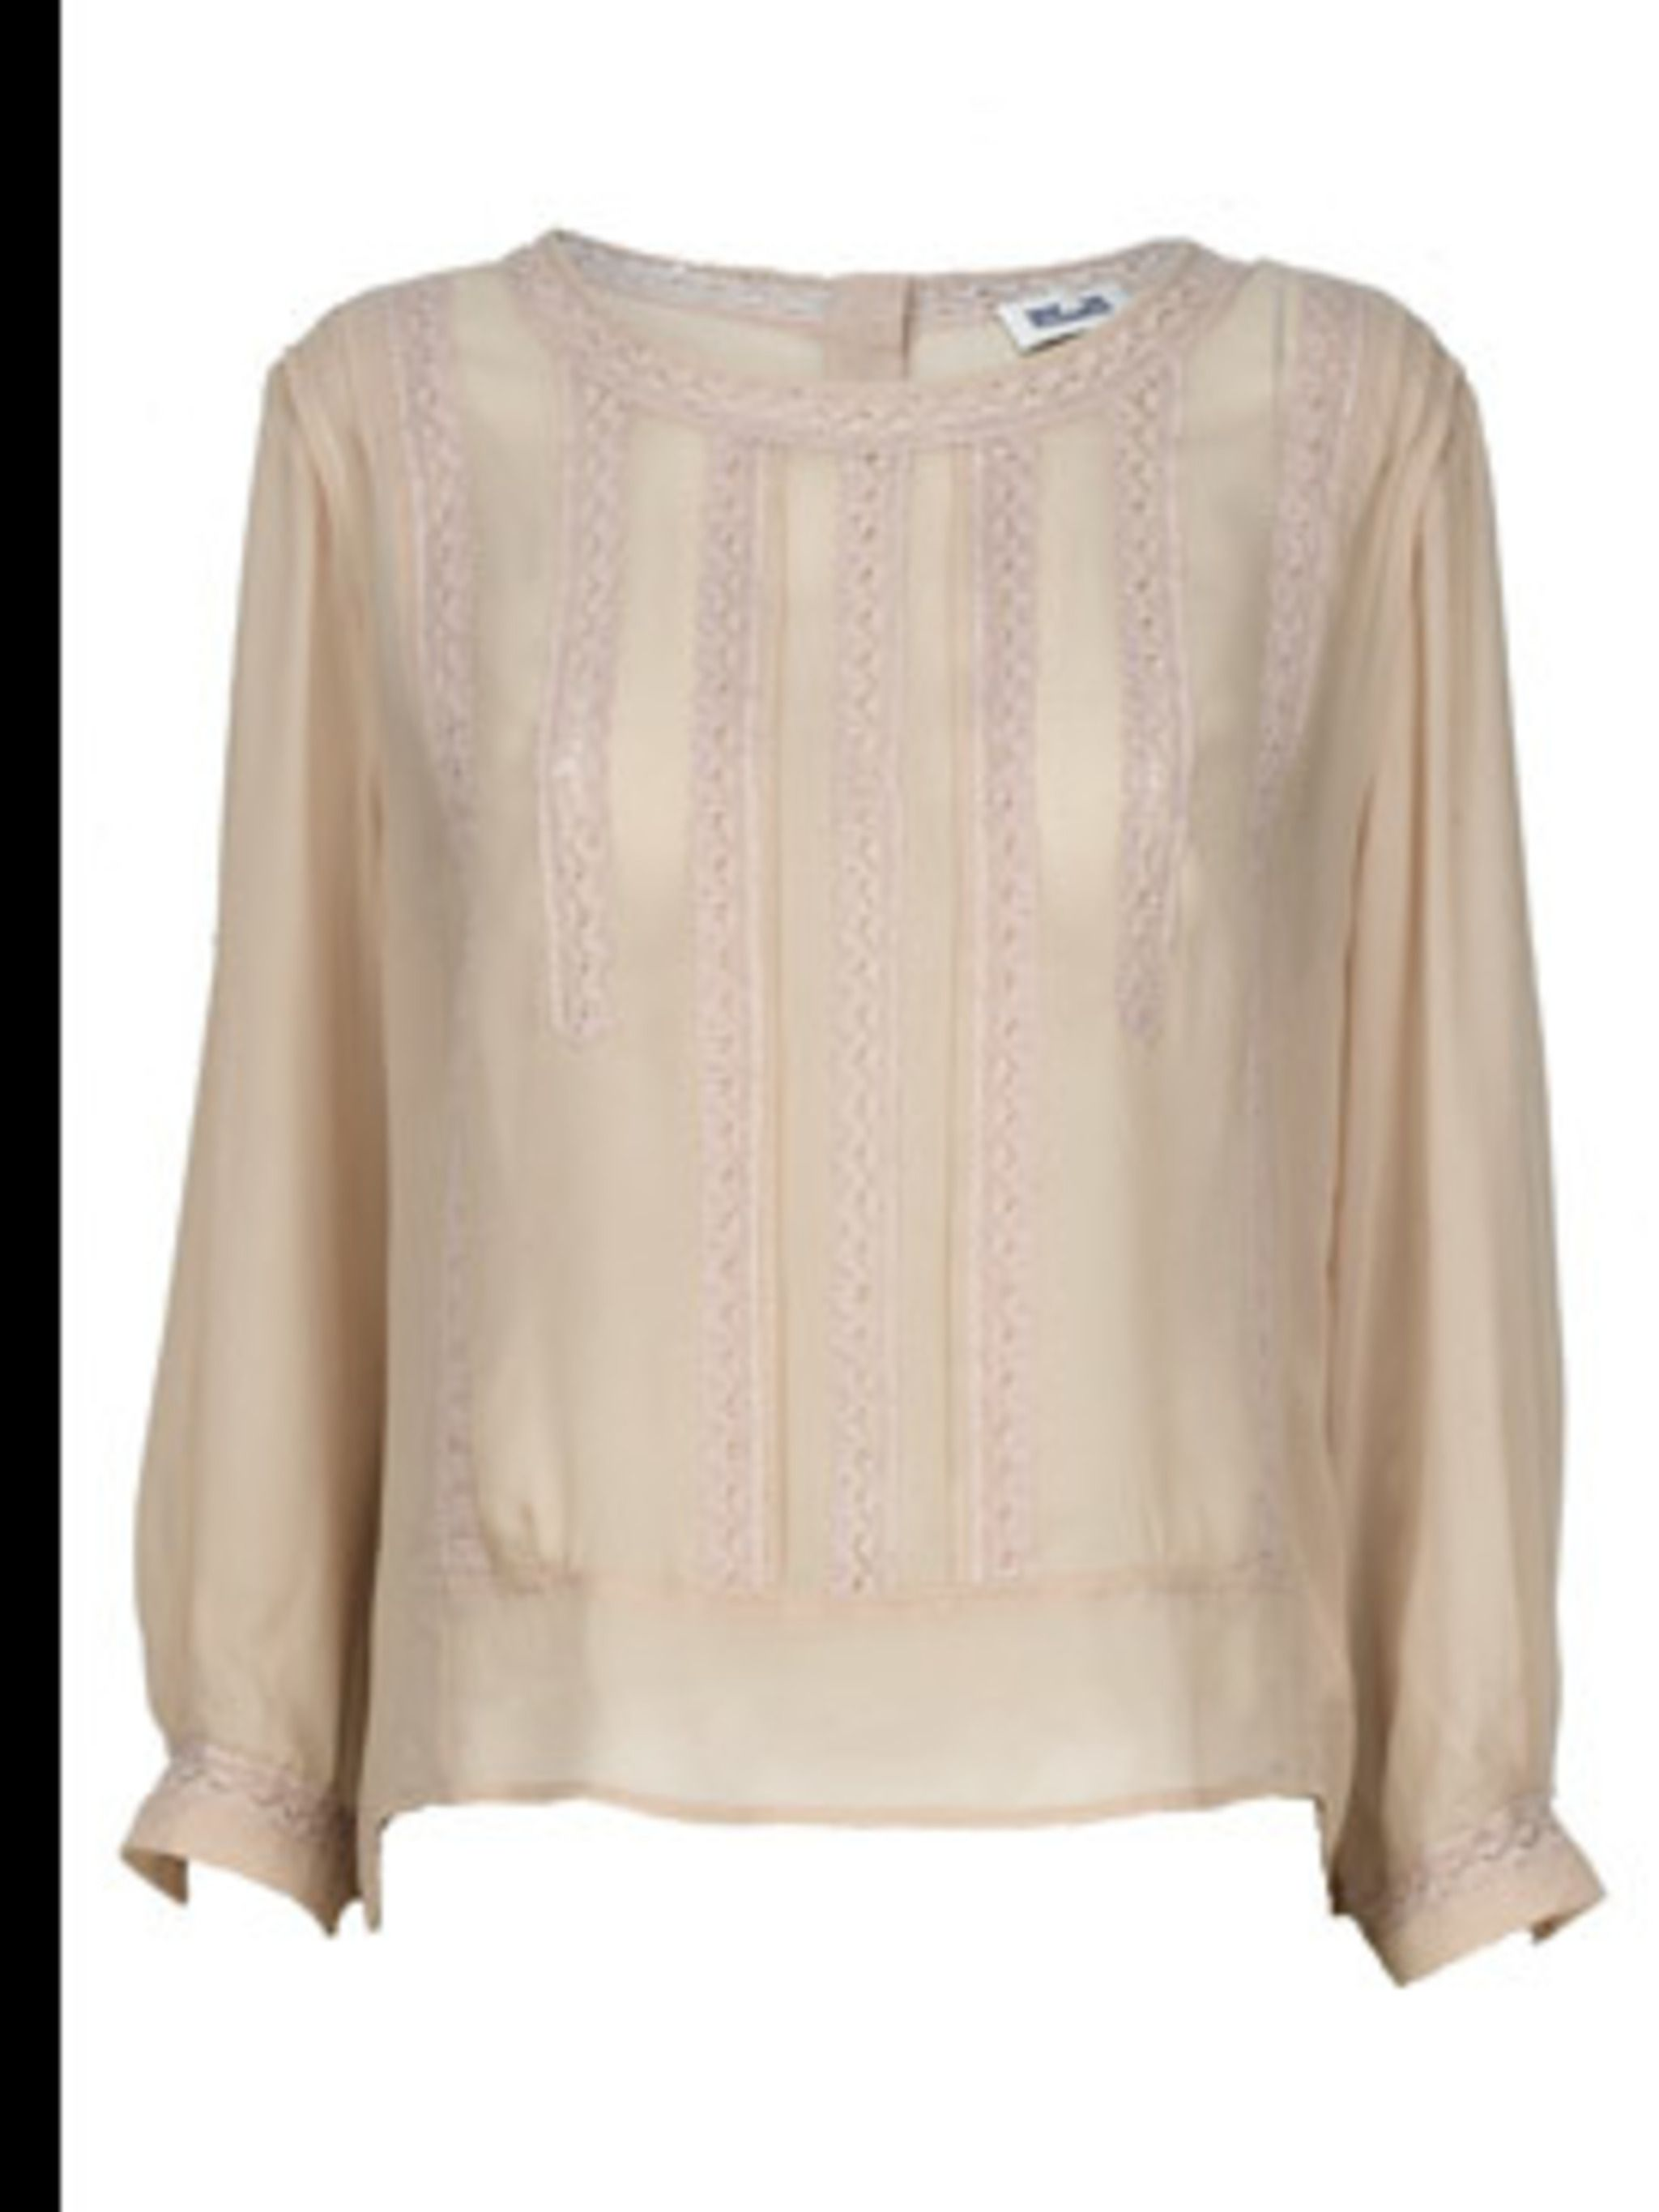 <p>Blouse, £189.00 by Baum Und Pferdgarten at Fenwicks. For stockists call 0207 629 9161</p>